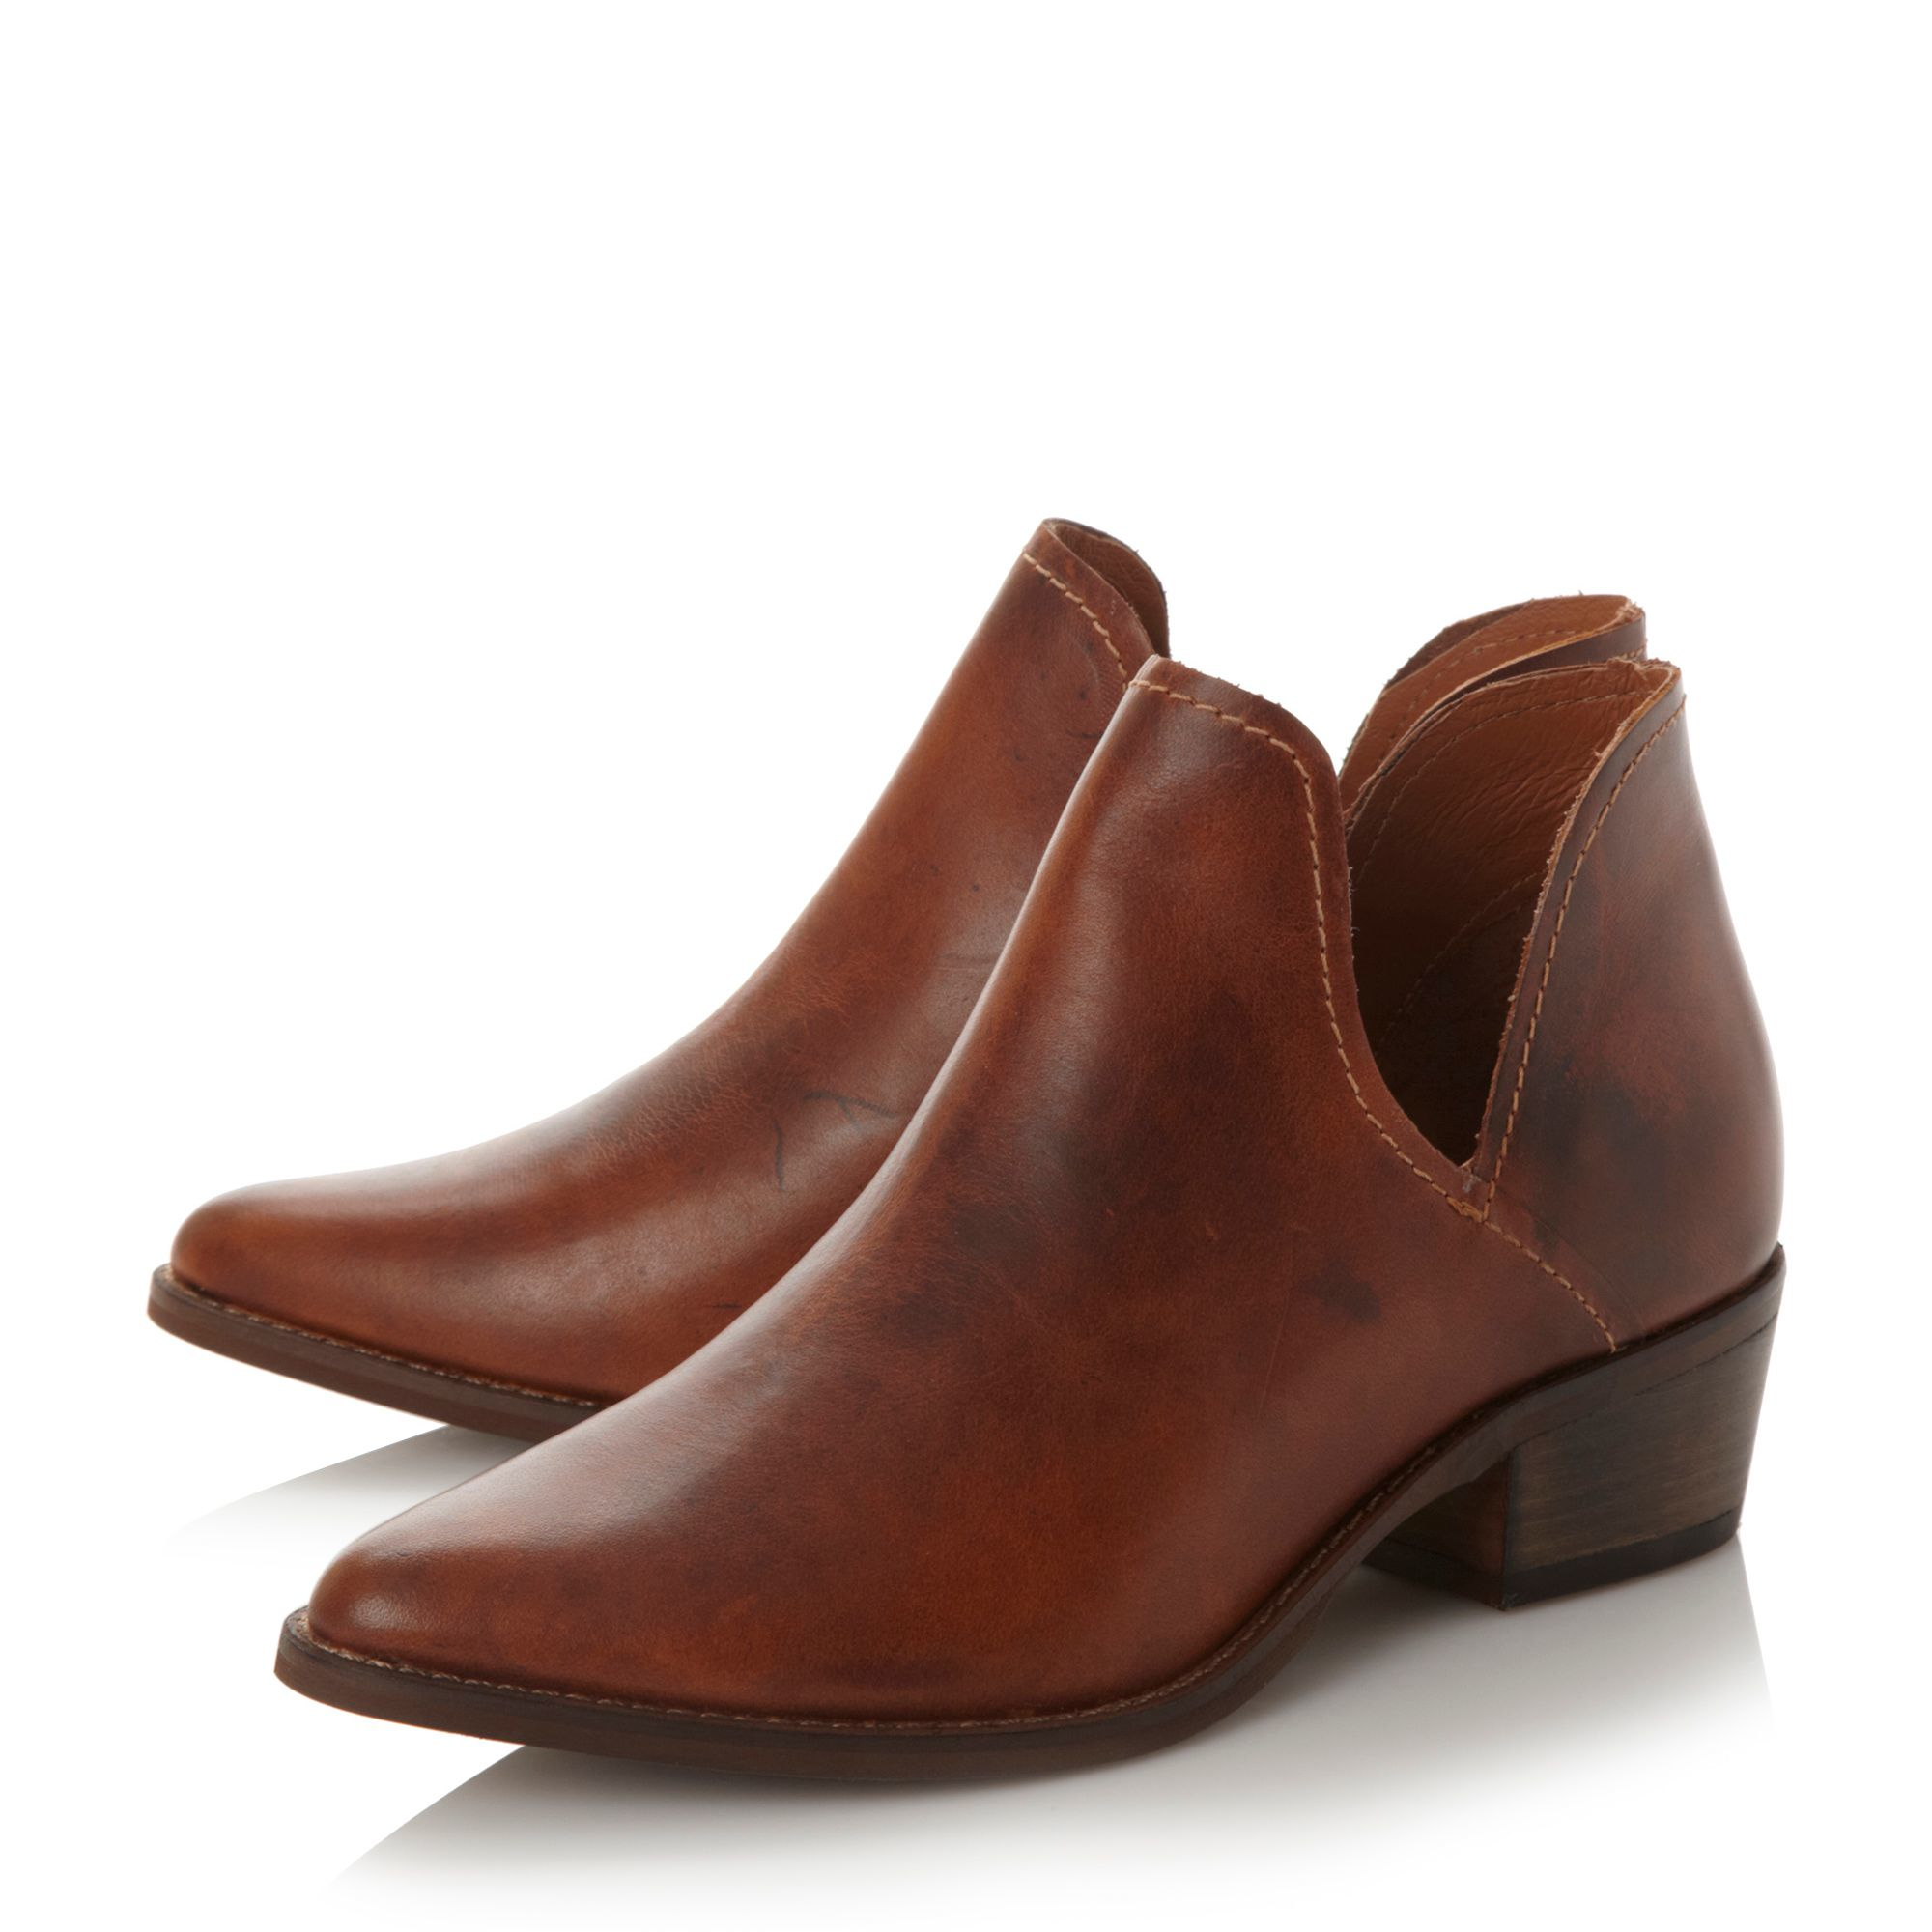 Steve madden Austyn Cut Out Ankle Boots in Brown | Lyst